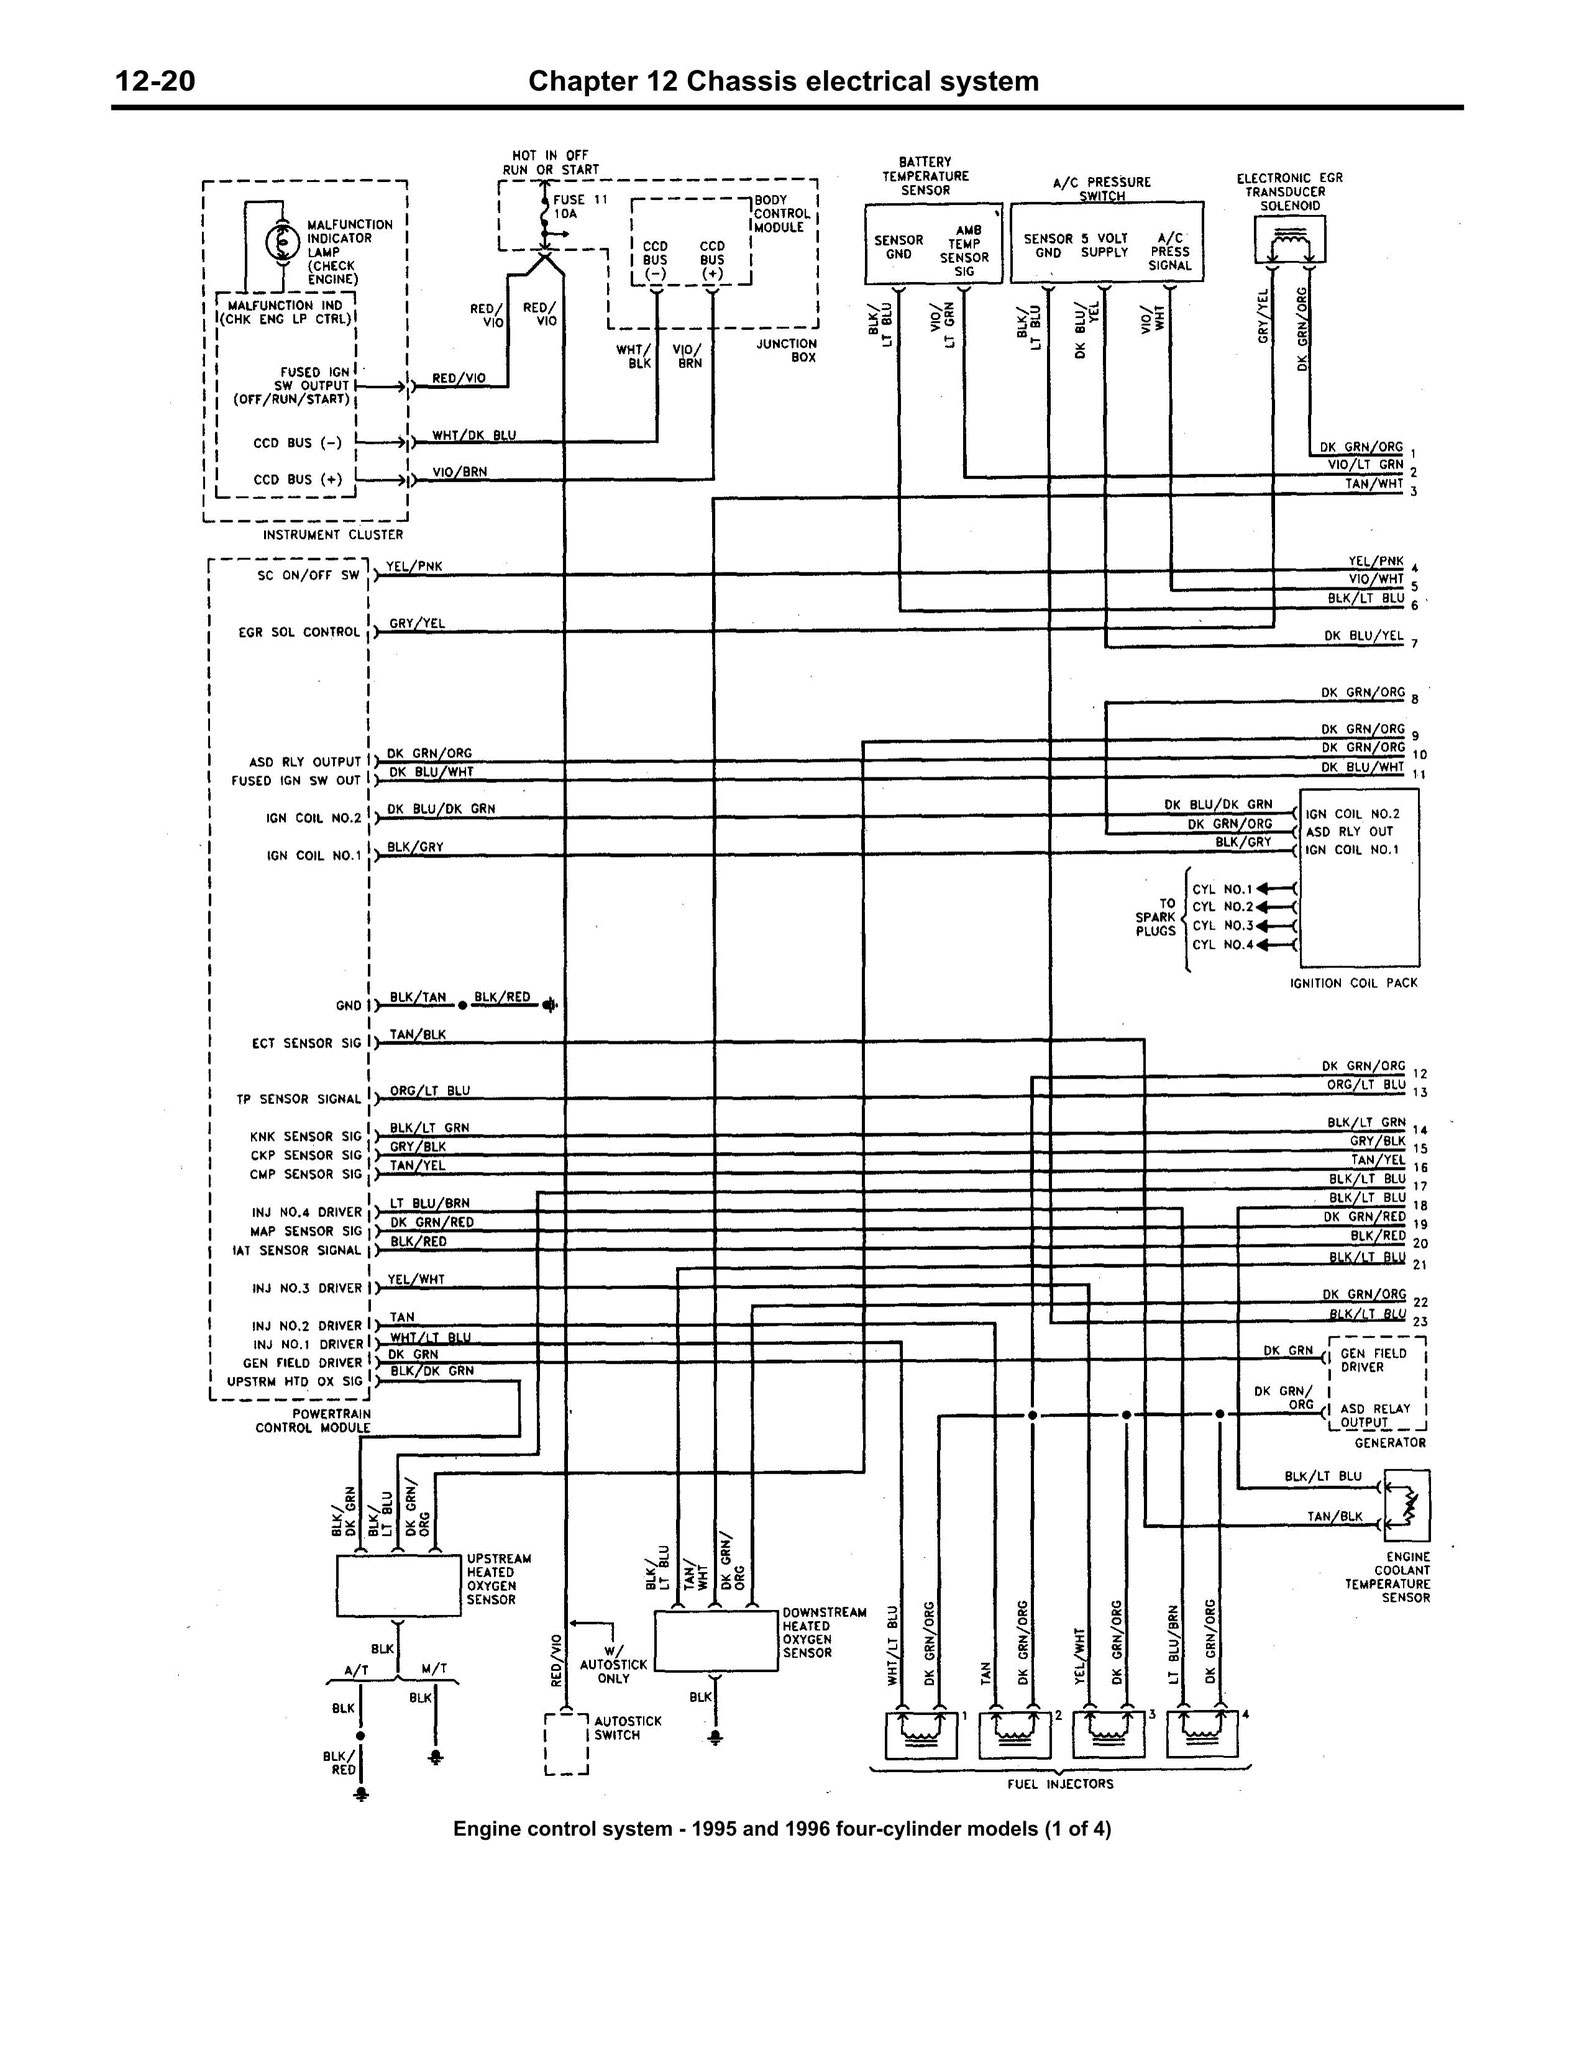 2005 Chrysler 300 C Fog Light Wiring Diagram from image.jimcdn.com